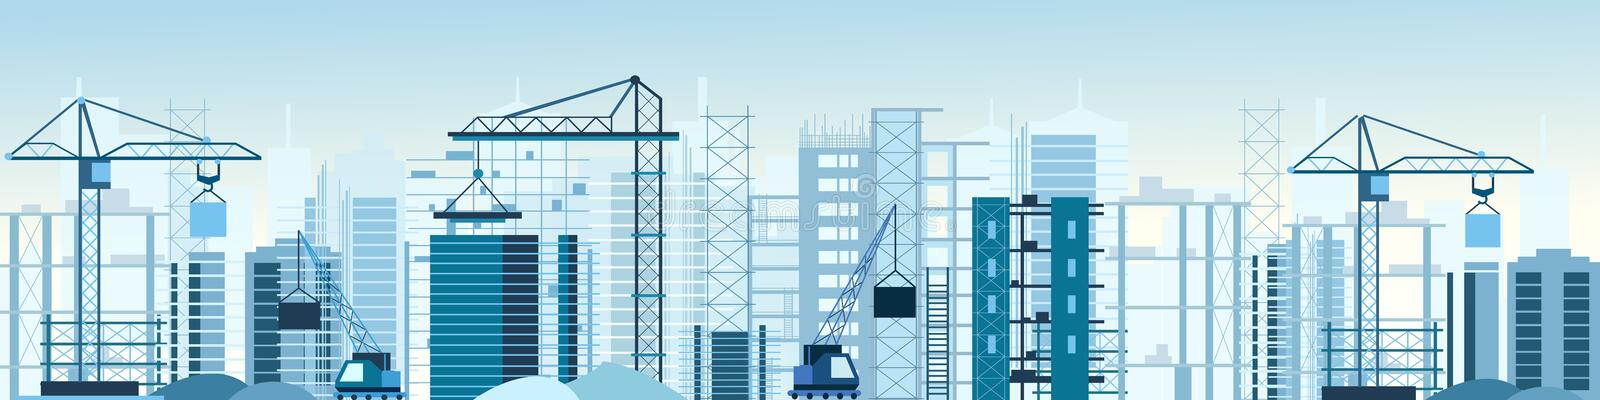 Vector illustration of buildings constructions site and cranes banner. skyscraper under construction. excavator, tipper stock illustration